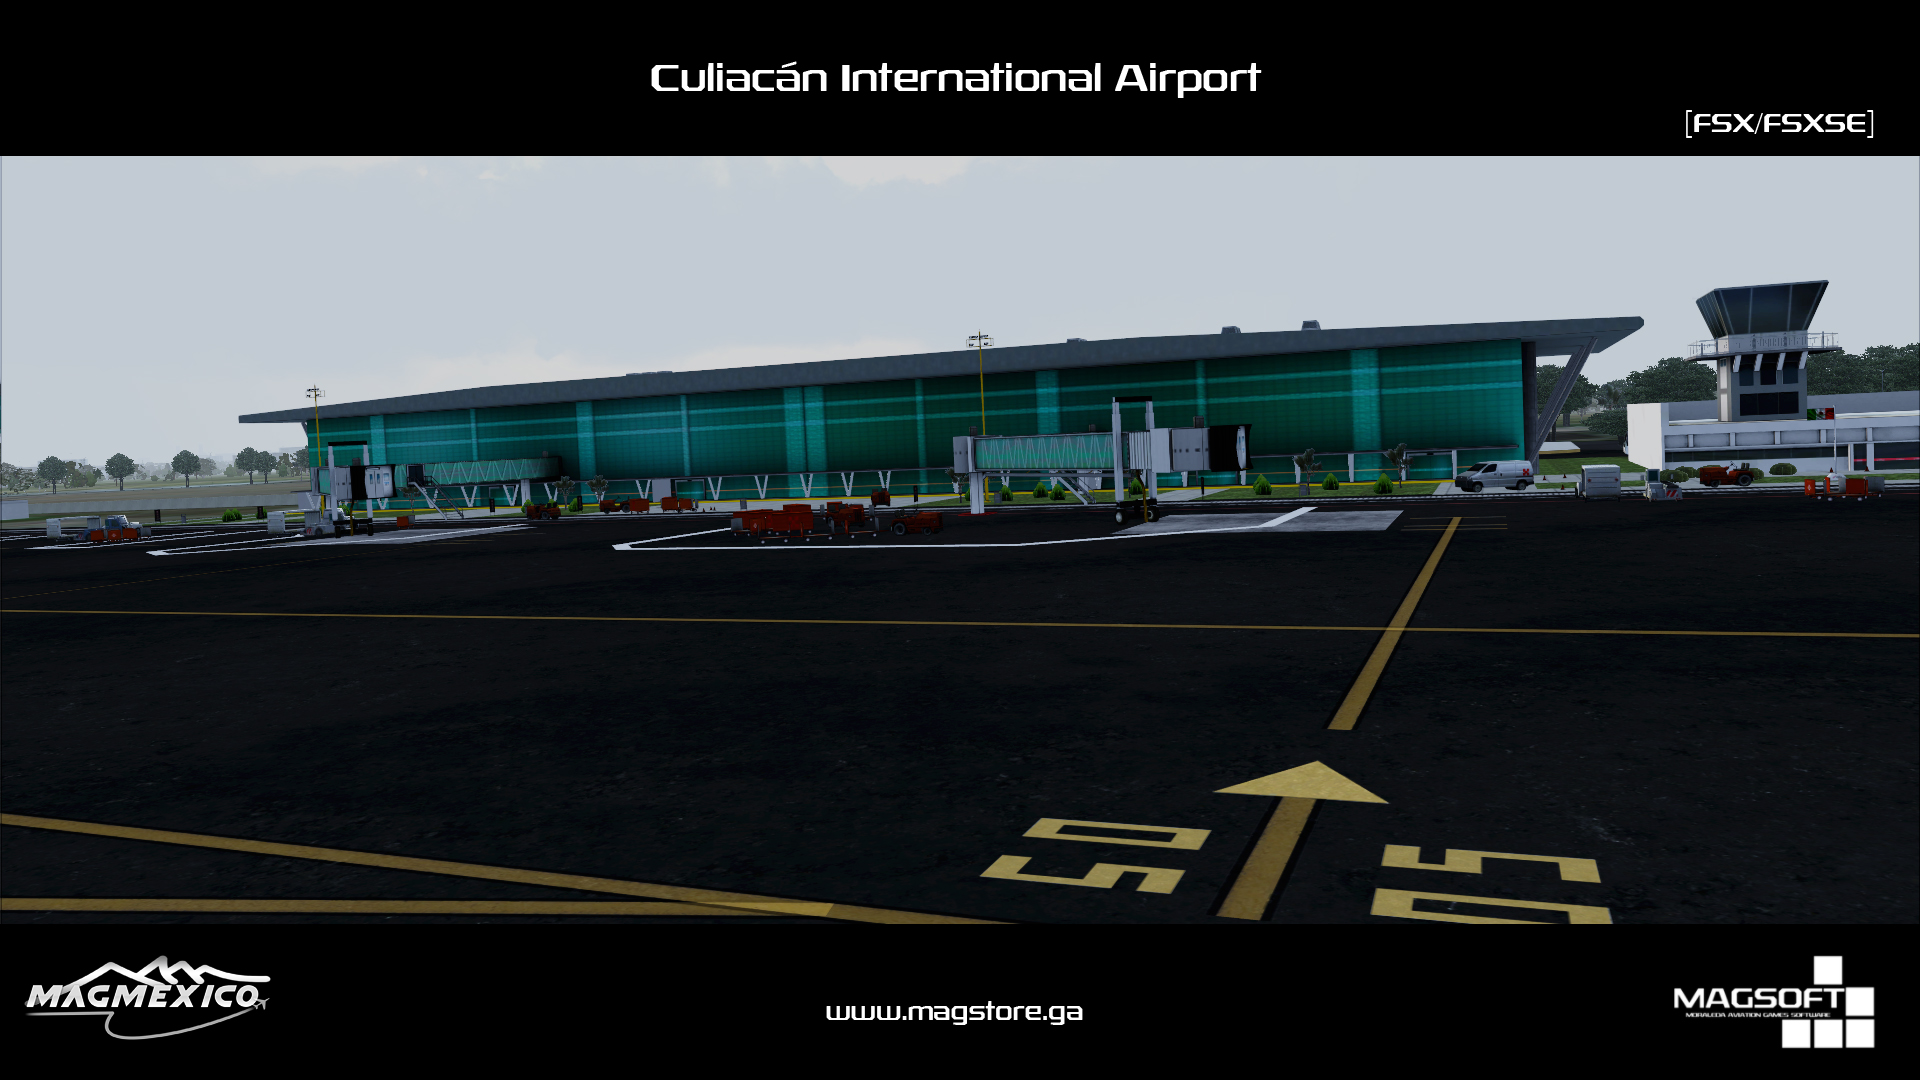 MAGMEXICO - CULIACÁN INTERNATIONAL AIRPORT FSX